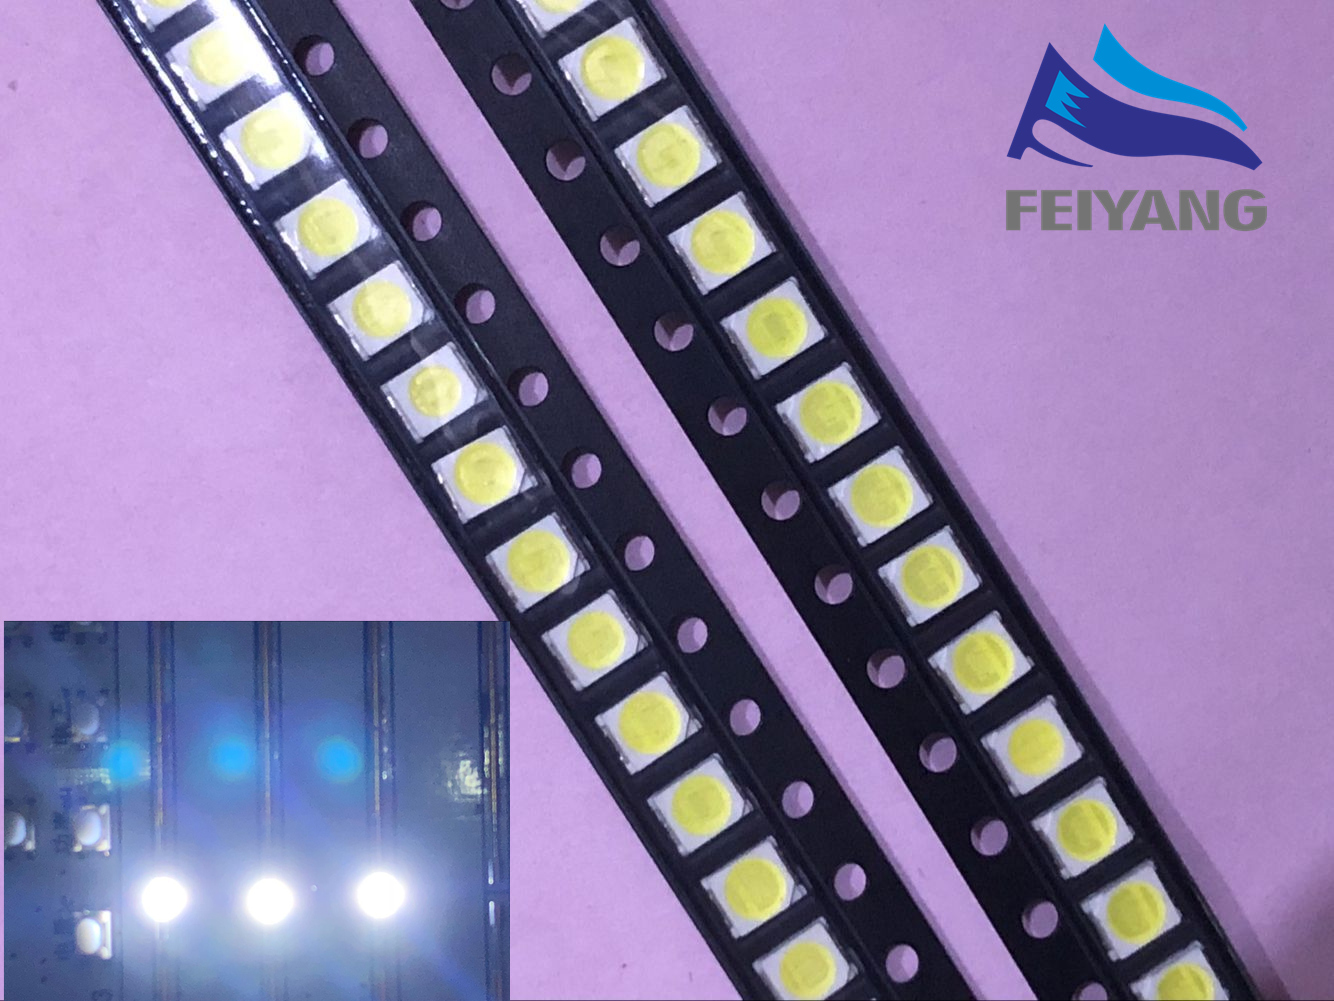 50pcs UNI <font><b>LED</b></font> 3528 <font><b>2835</b></font> 1210 <font><b>LED</b></font> Backlight TV High Power <font><b>1W</b></font> <font><b>3V</b></font> <font><b>LED</b></font> Backlight Cool white For <font><b>LED</b></font> LCD TV Backlight Application image